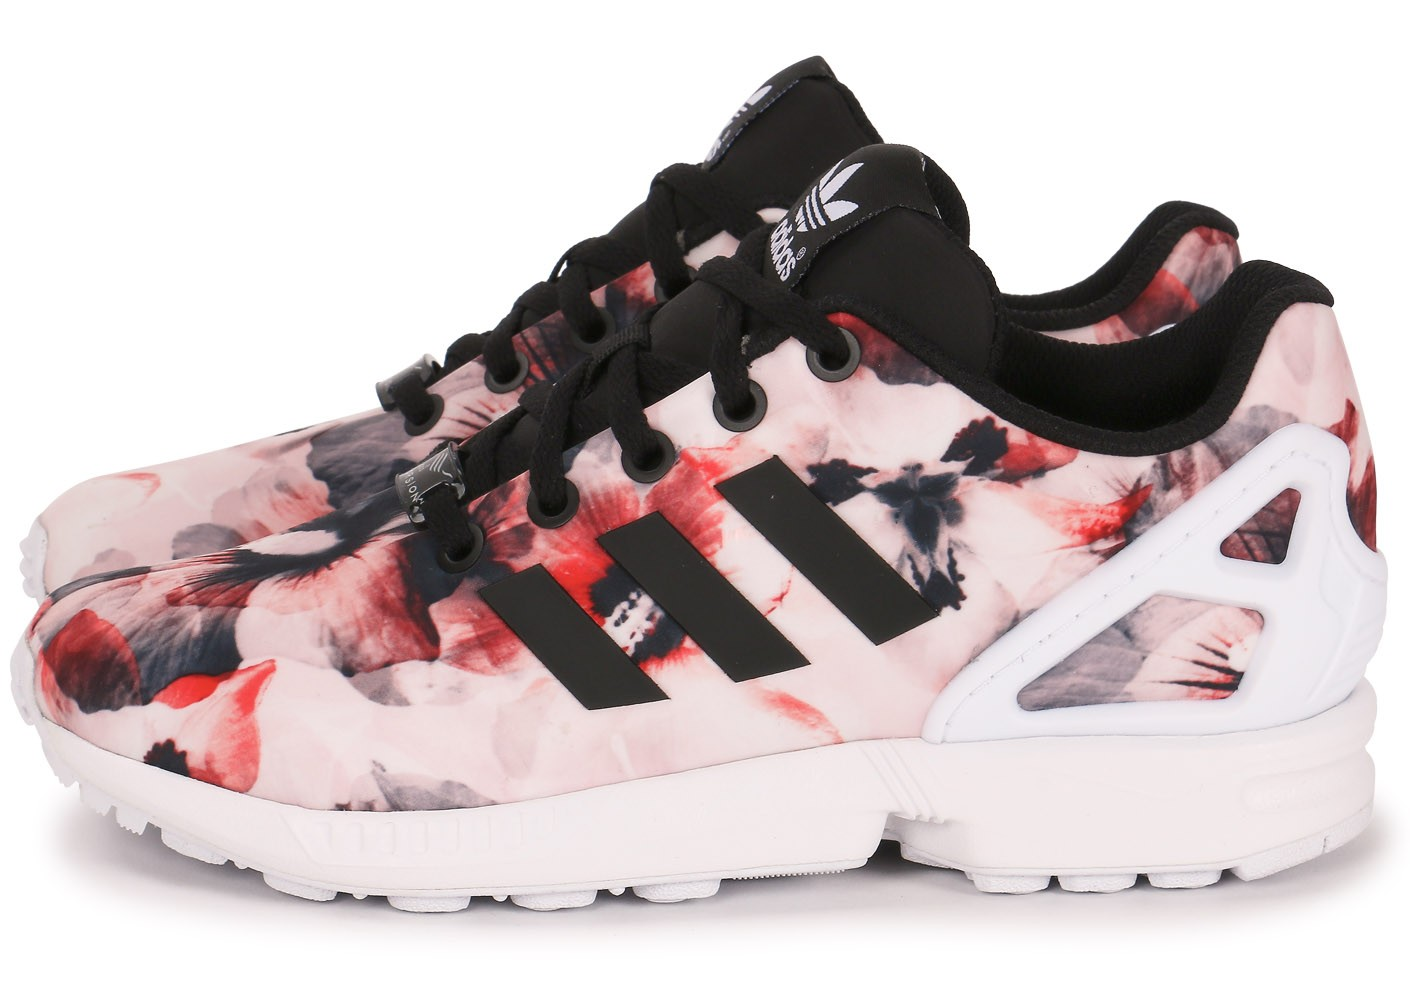 adidas zx flux ripstop